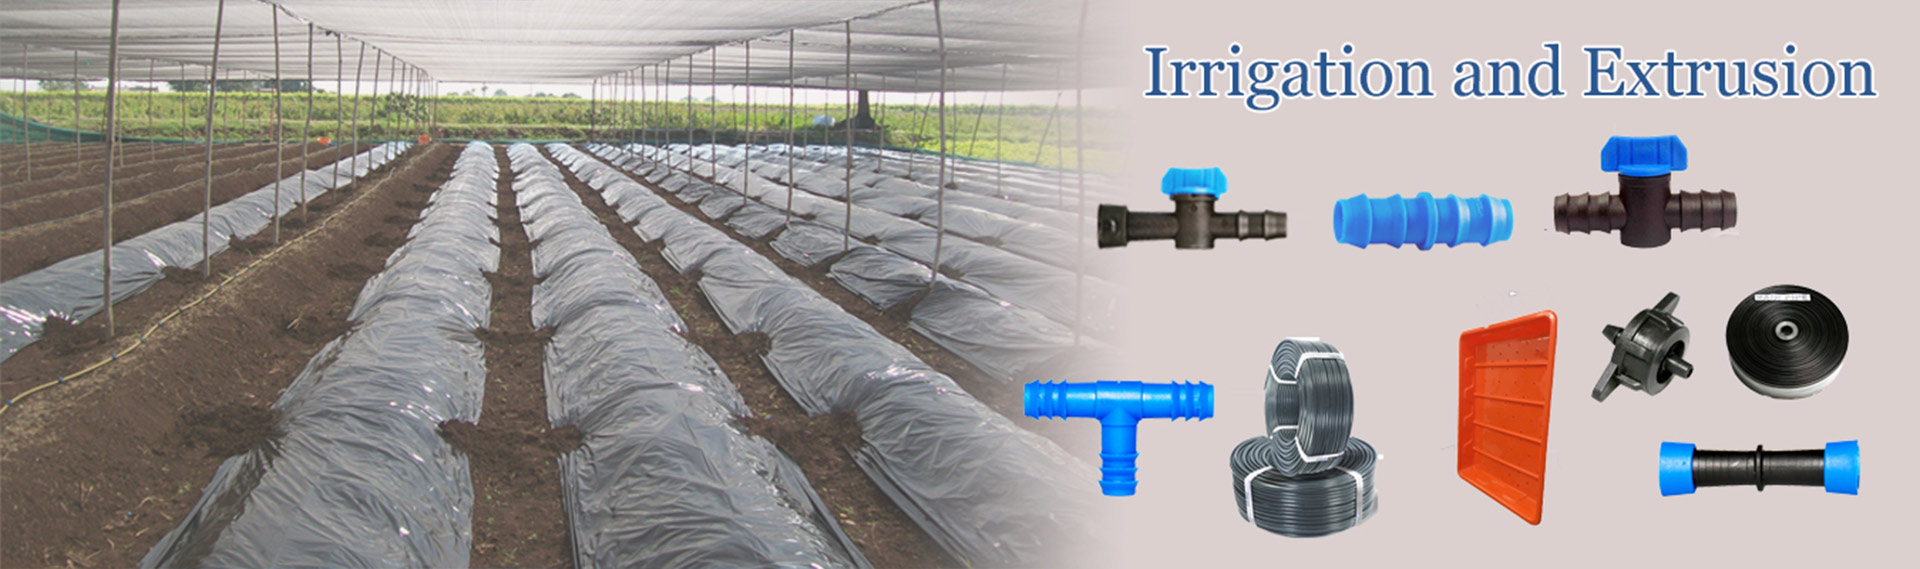 Irrigation and Extrusion